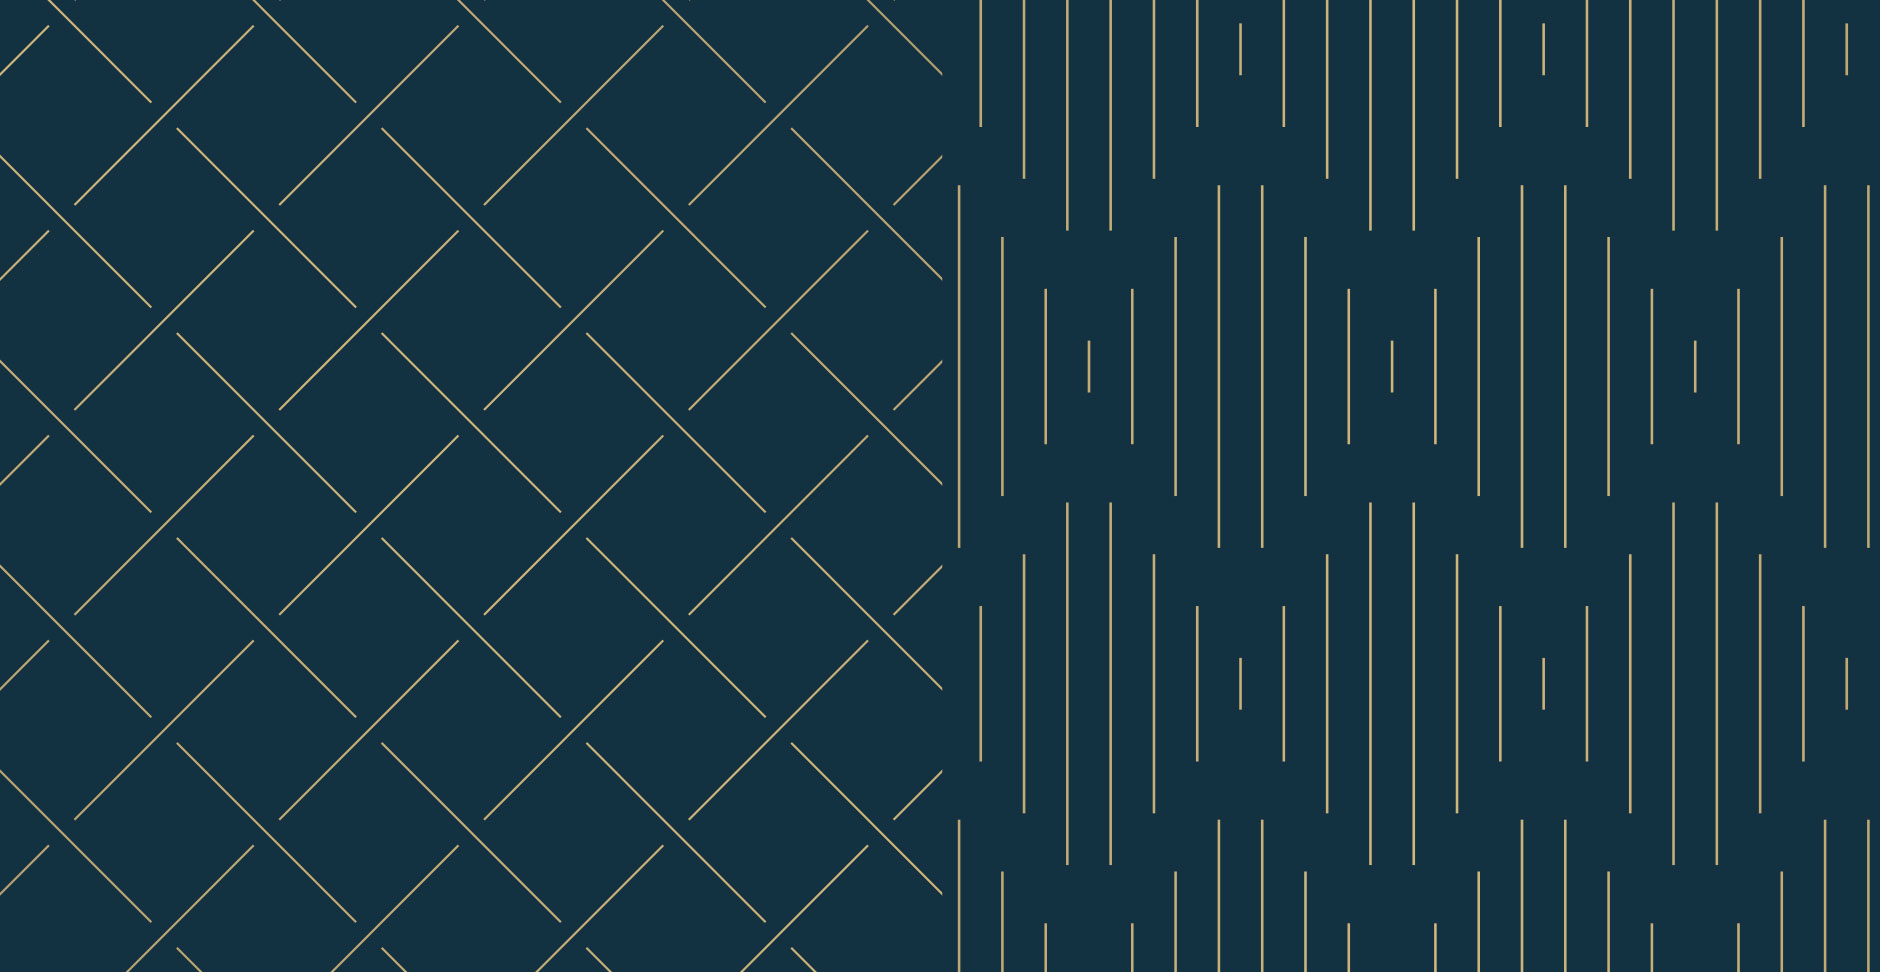 Decca_Luxe_patterns